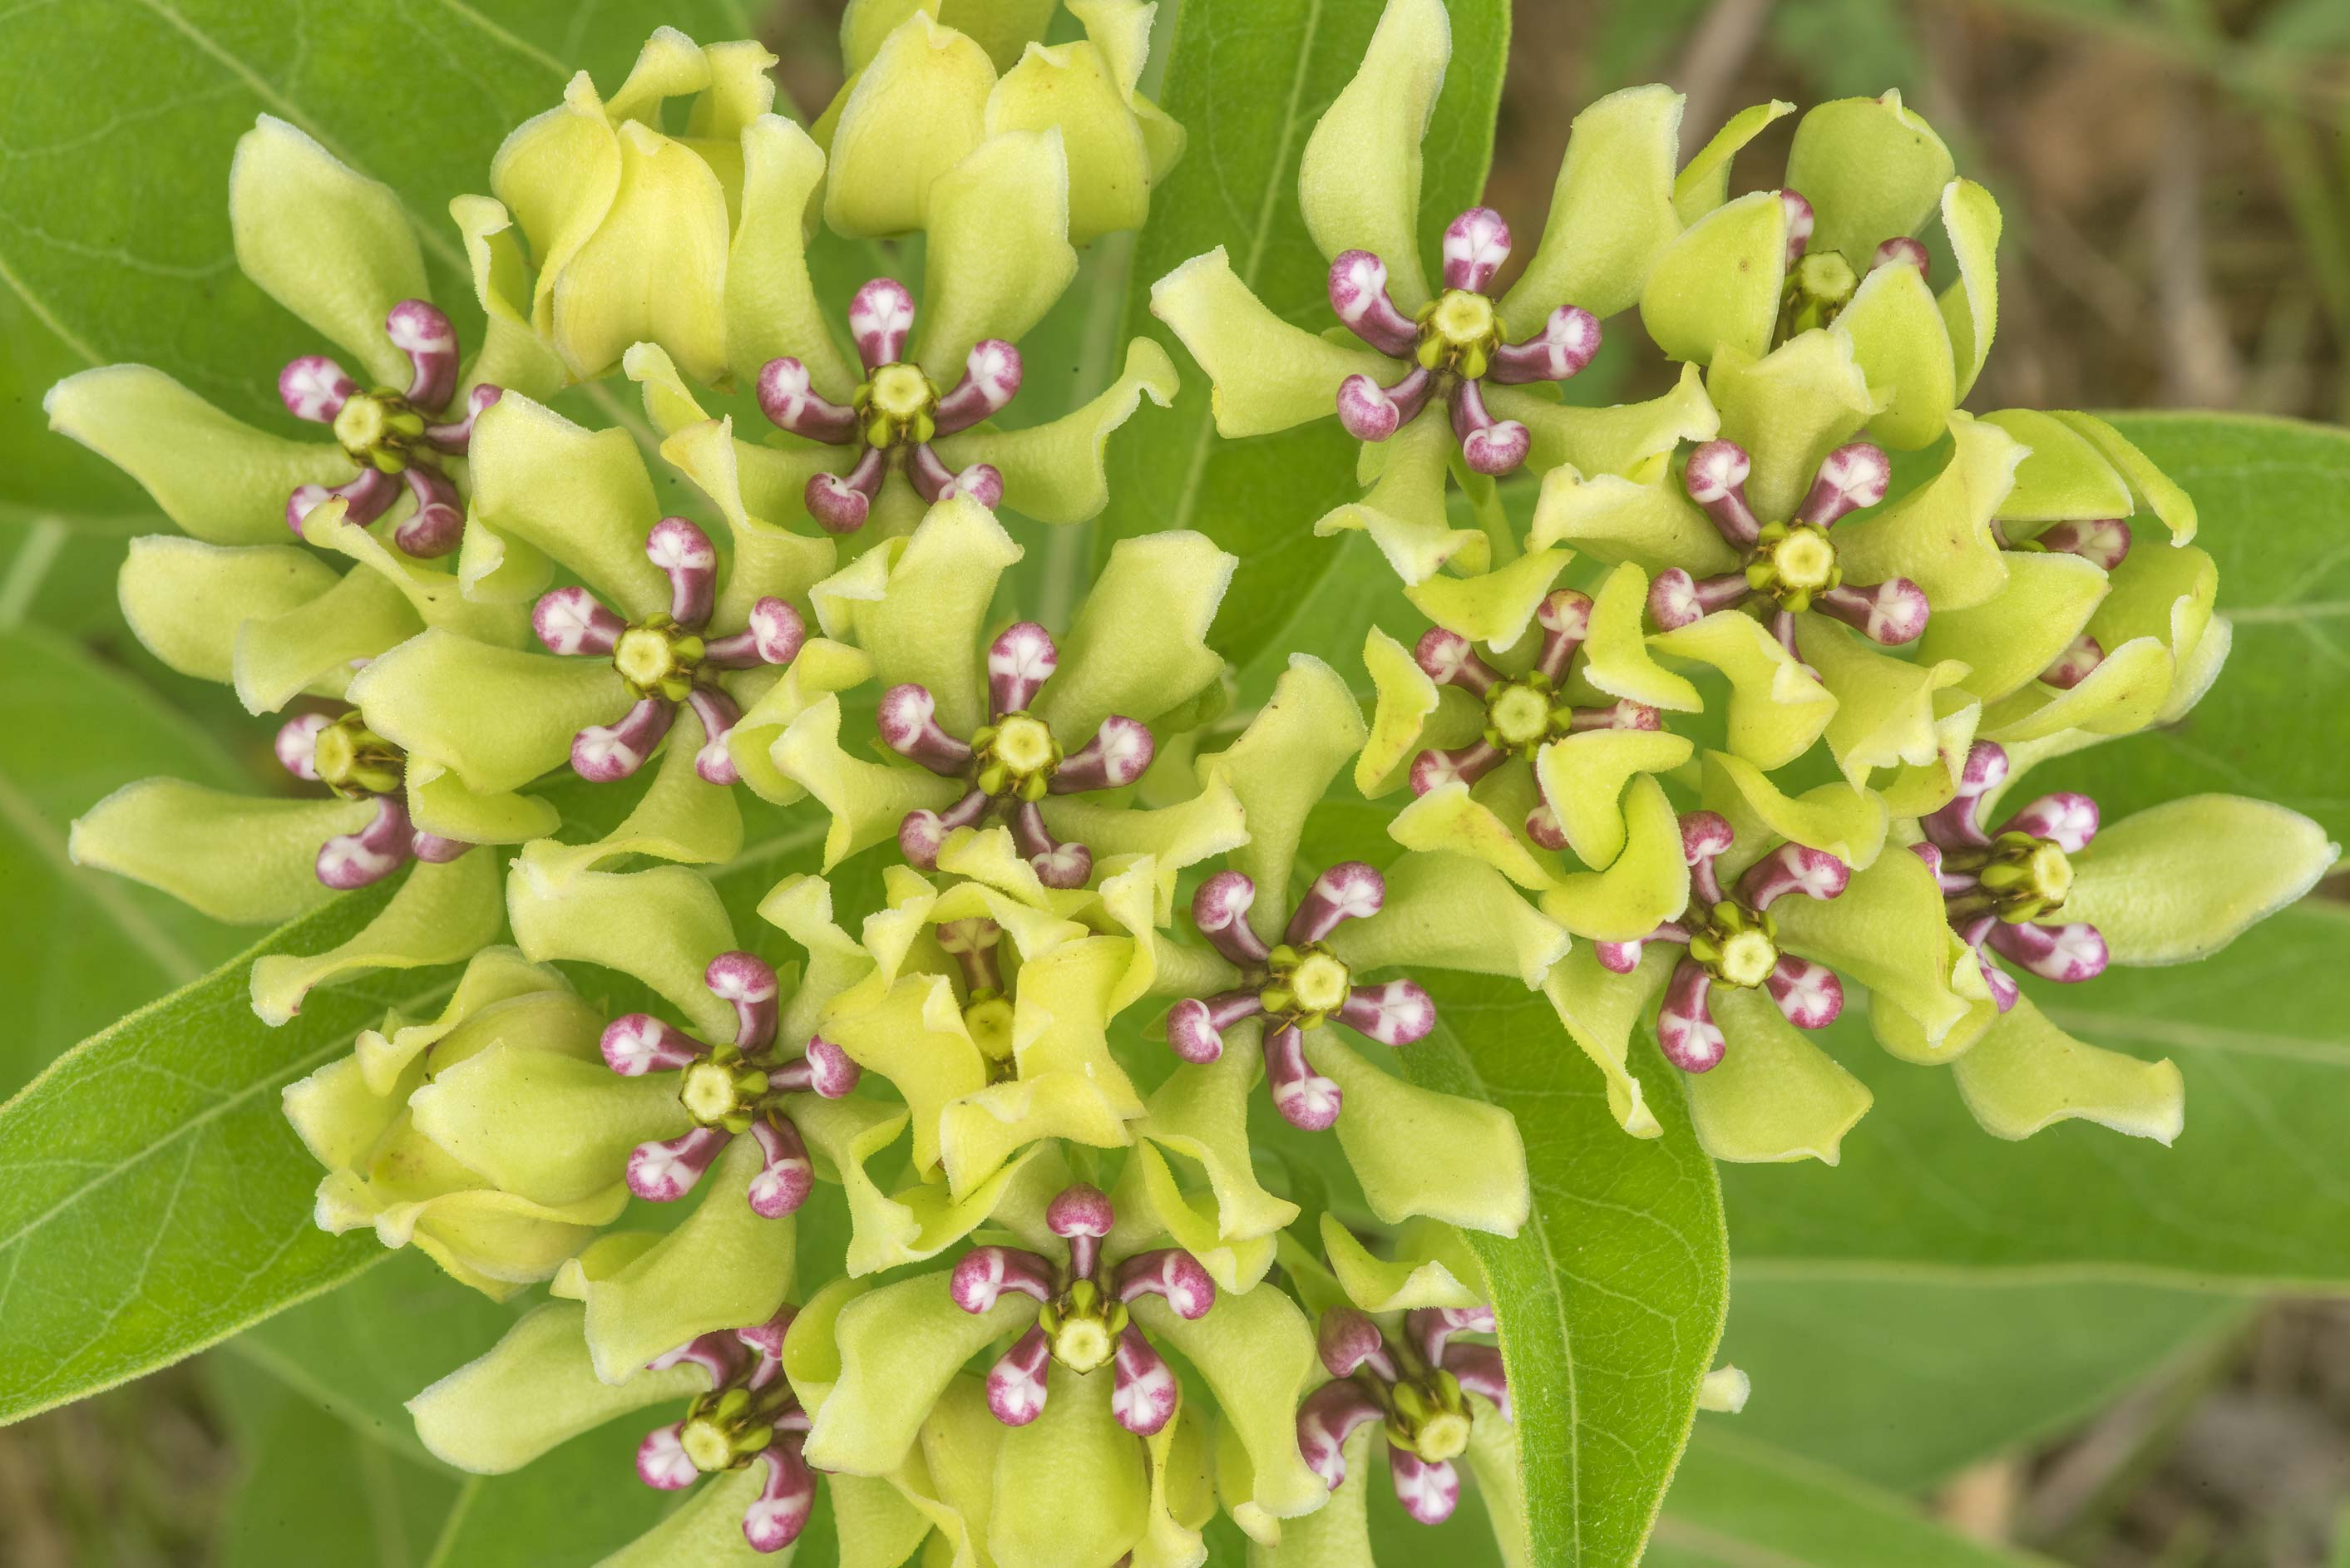 Flowers of green milkweed (Asclepias viridis) on...State Historic Site. Washington, Texas